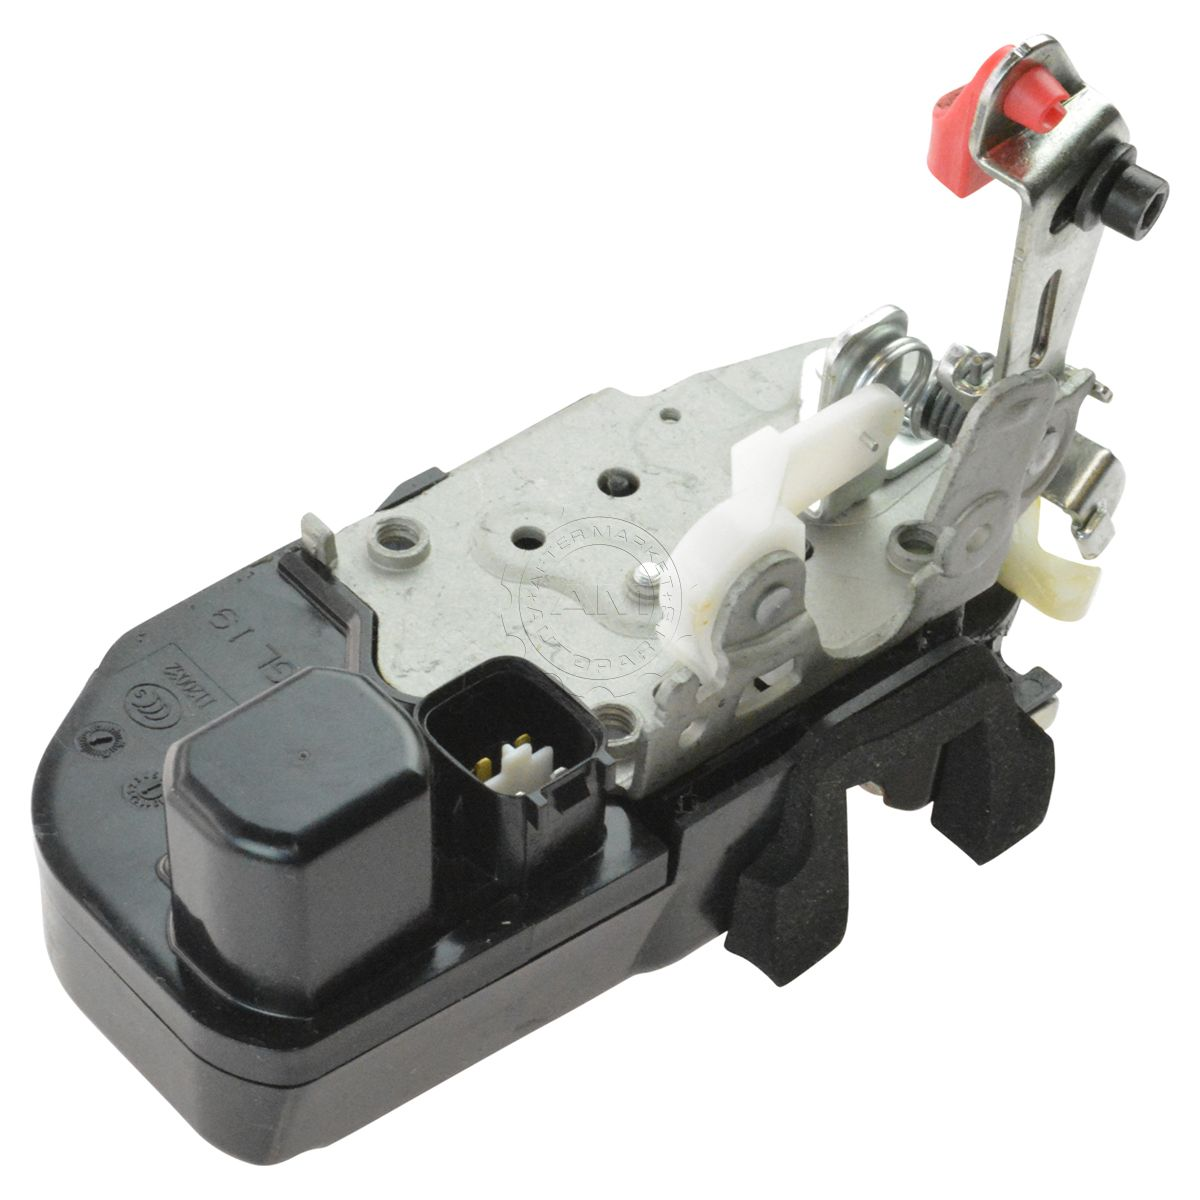 OEM Rear Tailgate Liftgate Power Door Lock Actuator w/ Latch for Jeep Liberty  sc 1 st  eBay & OEM Rear Tailgate Liftgate Power Door Lock Actuator w/ Latch for ...